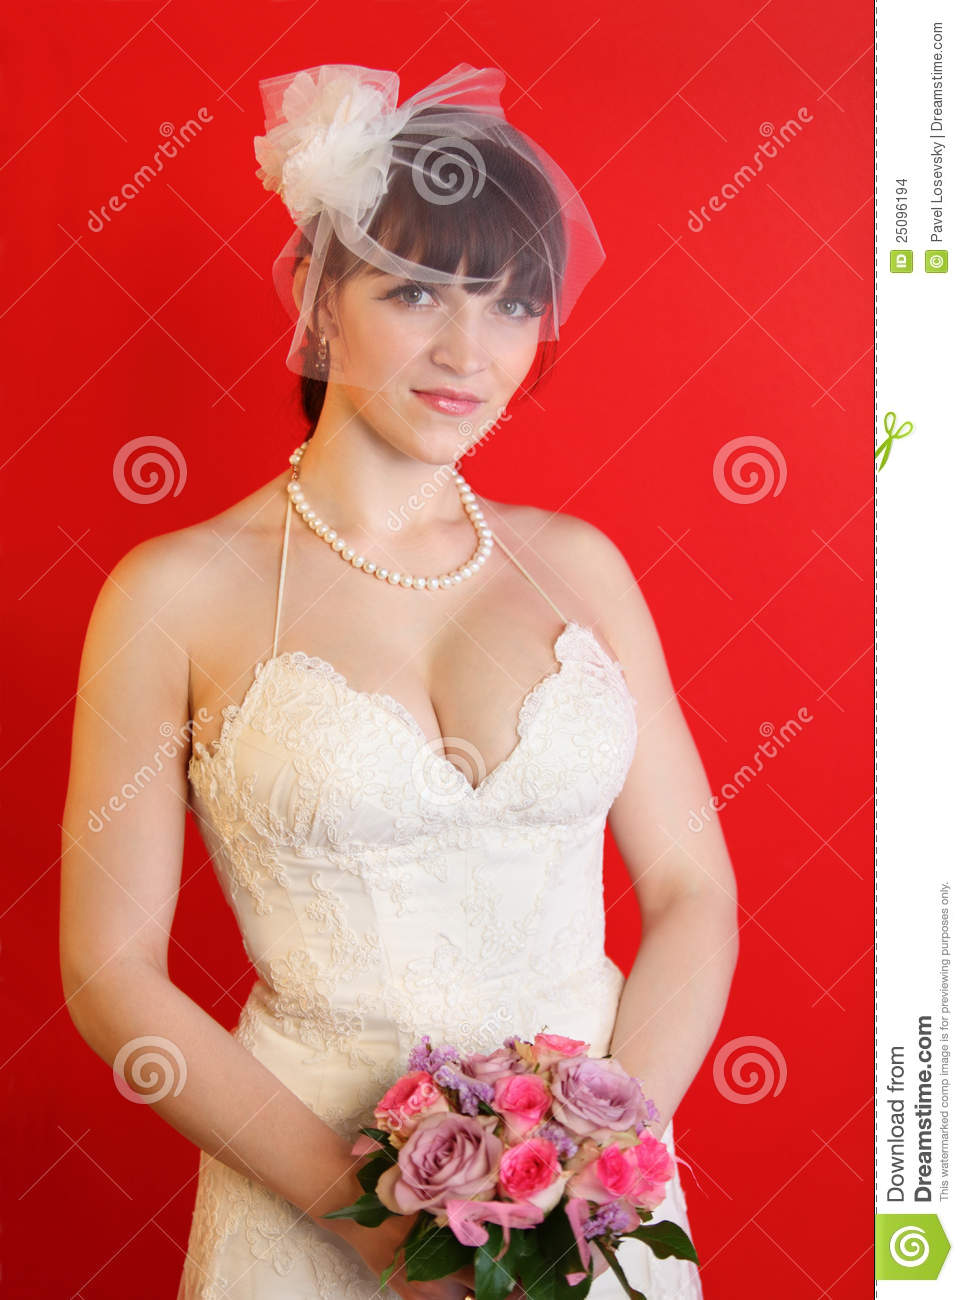 Bride wearing white dress holds bouquet of roses